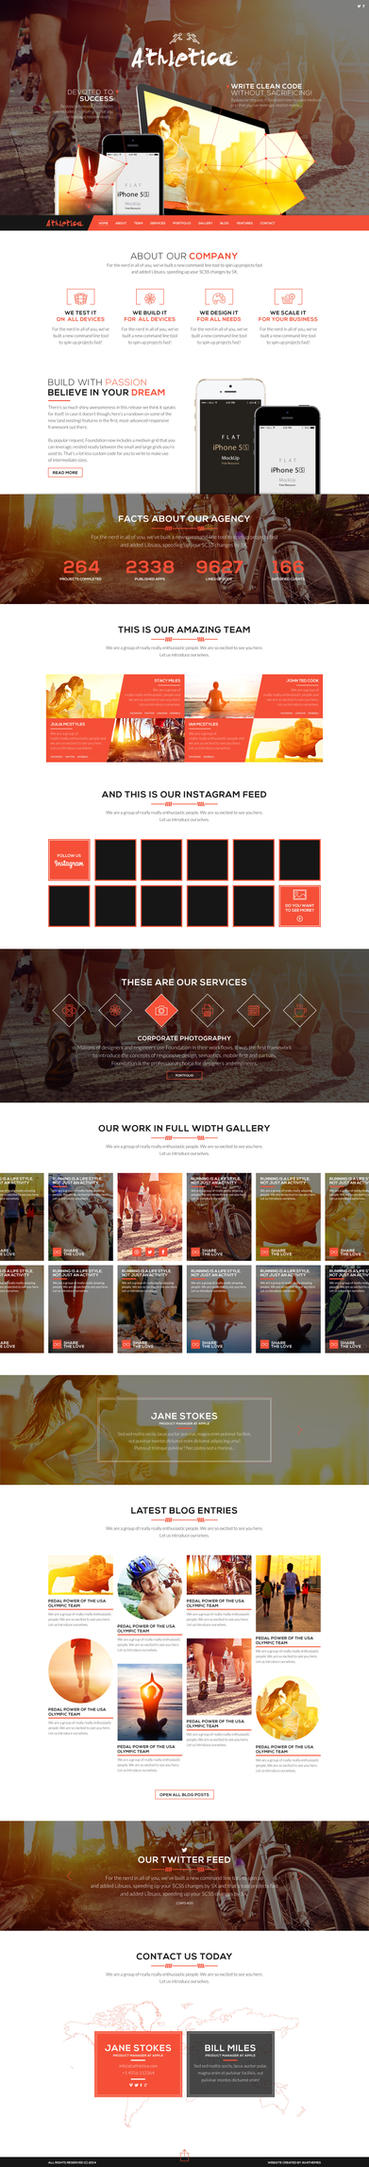 Athletica Parallax Web Theme by sandracz